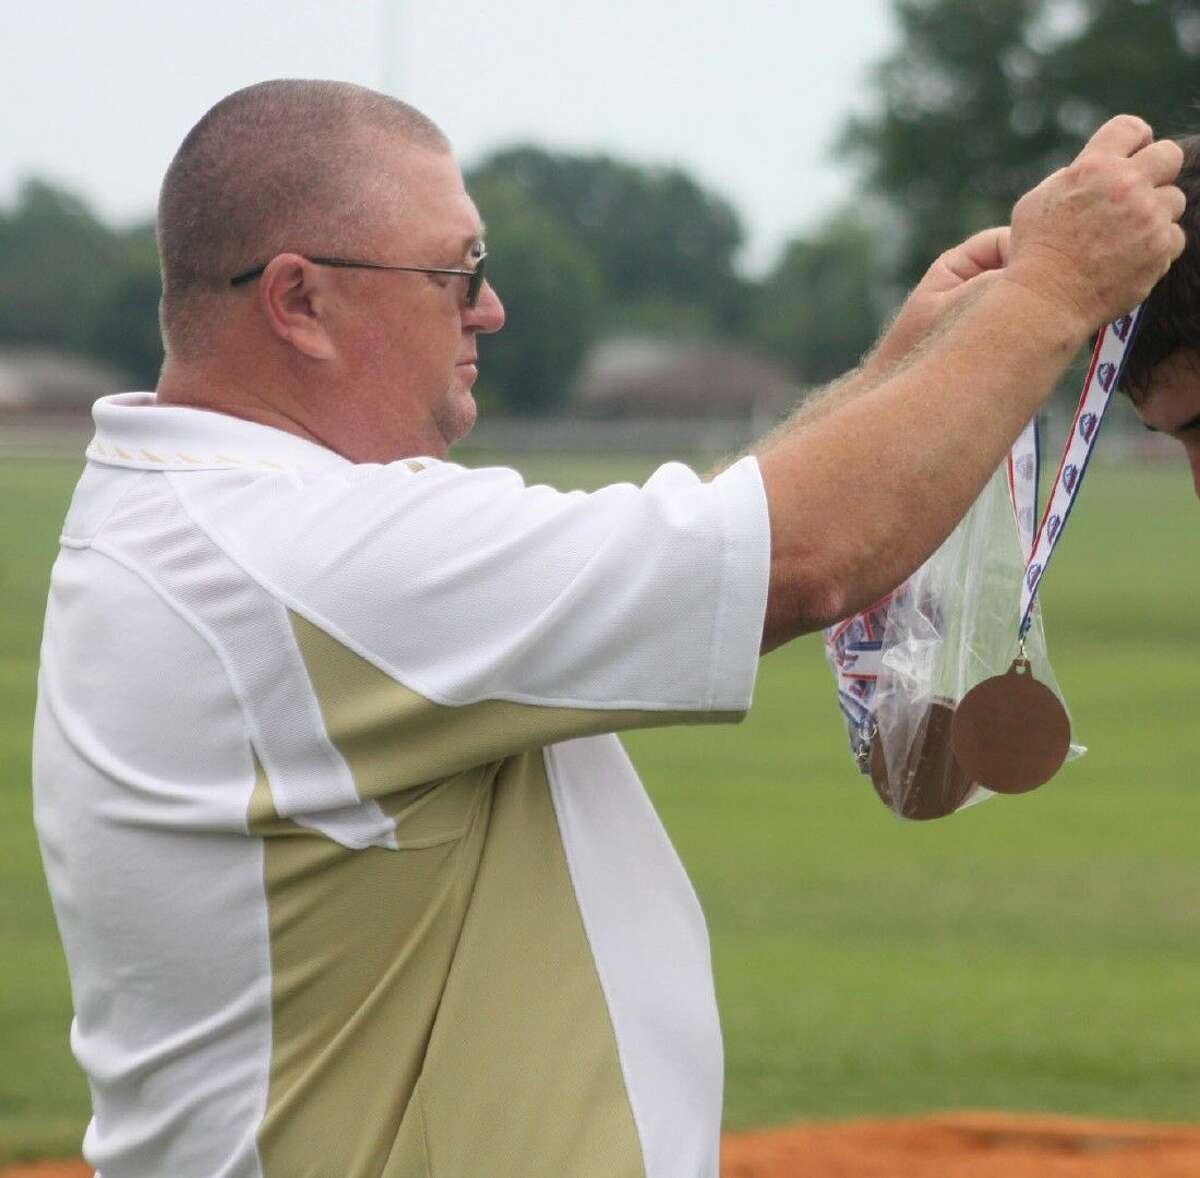 Pony Baseball official Billy Brooks will be back this week presenting South Zone tournament medals to teams and individuals just as he did last July. The important action gets under way Thursday night in Deer Park.